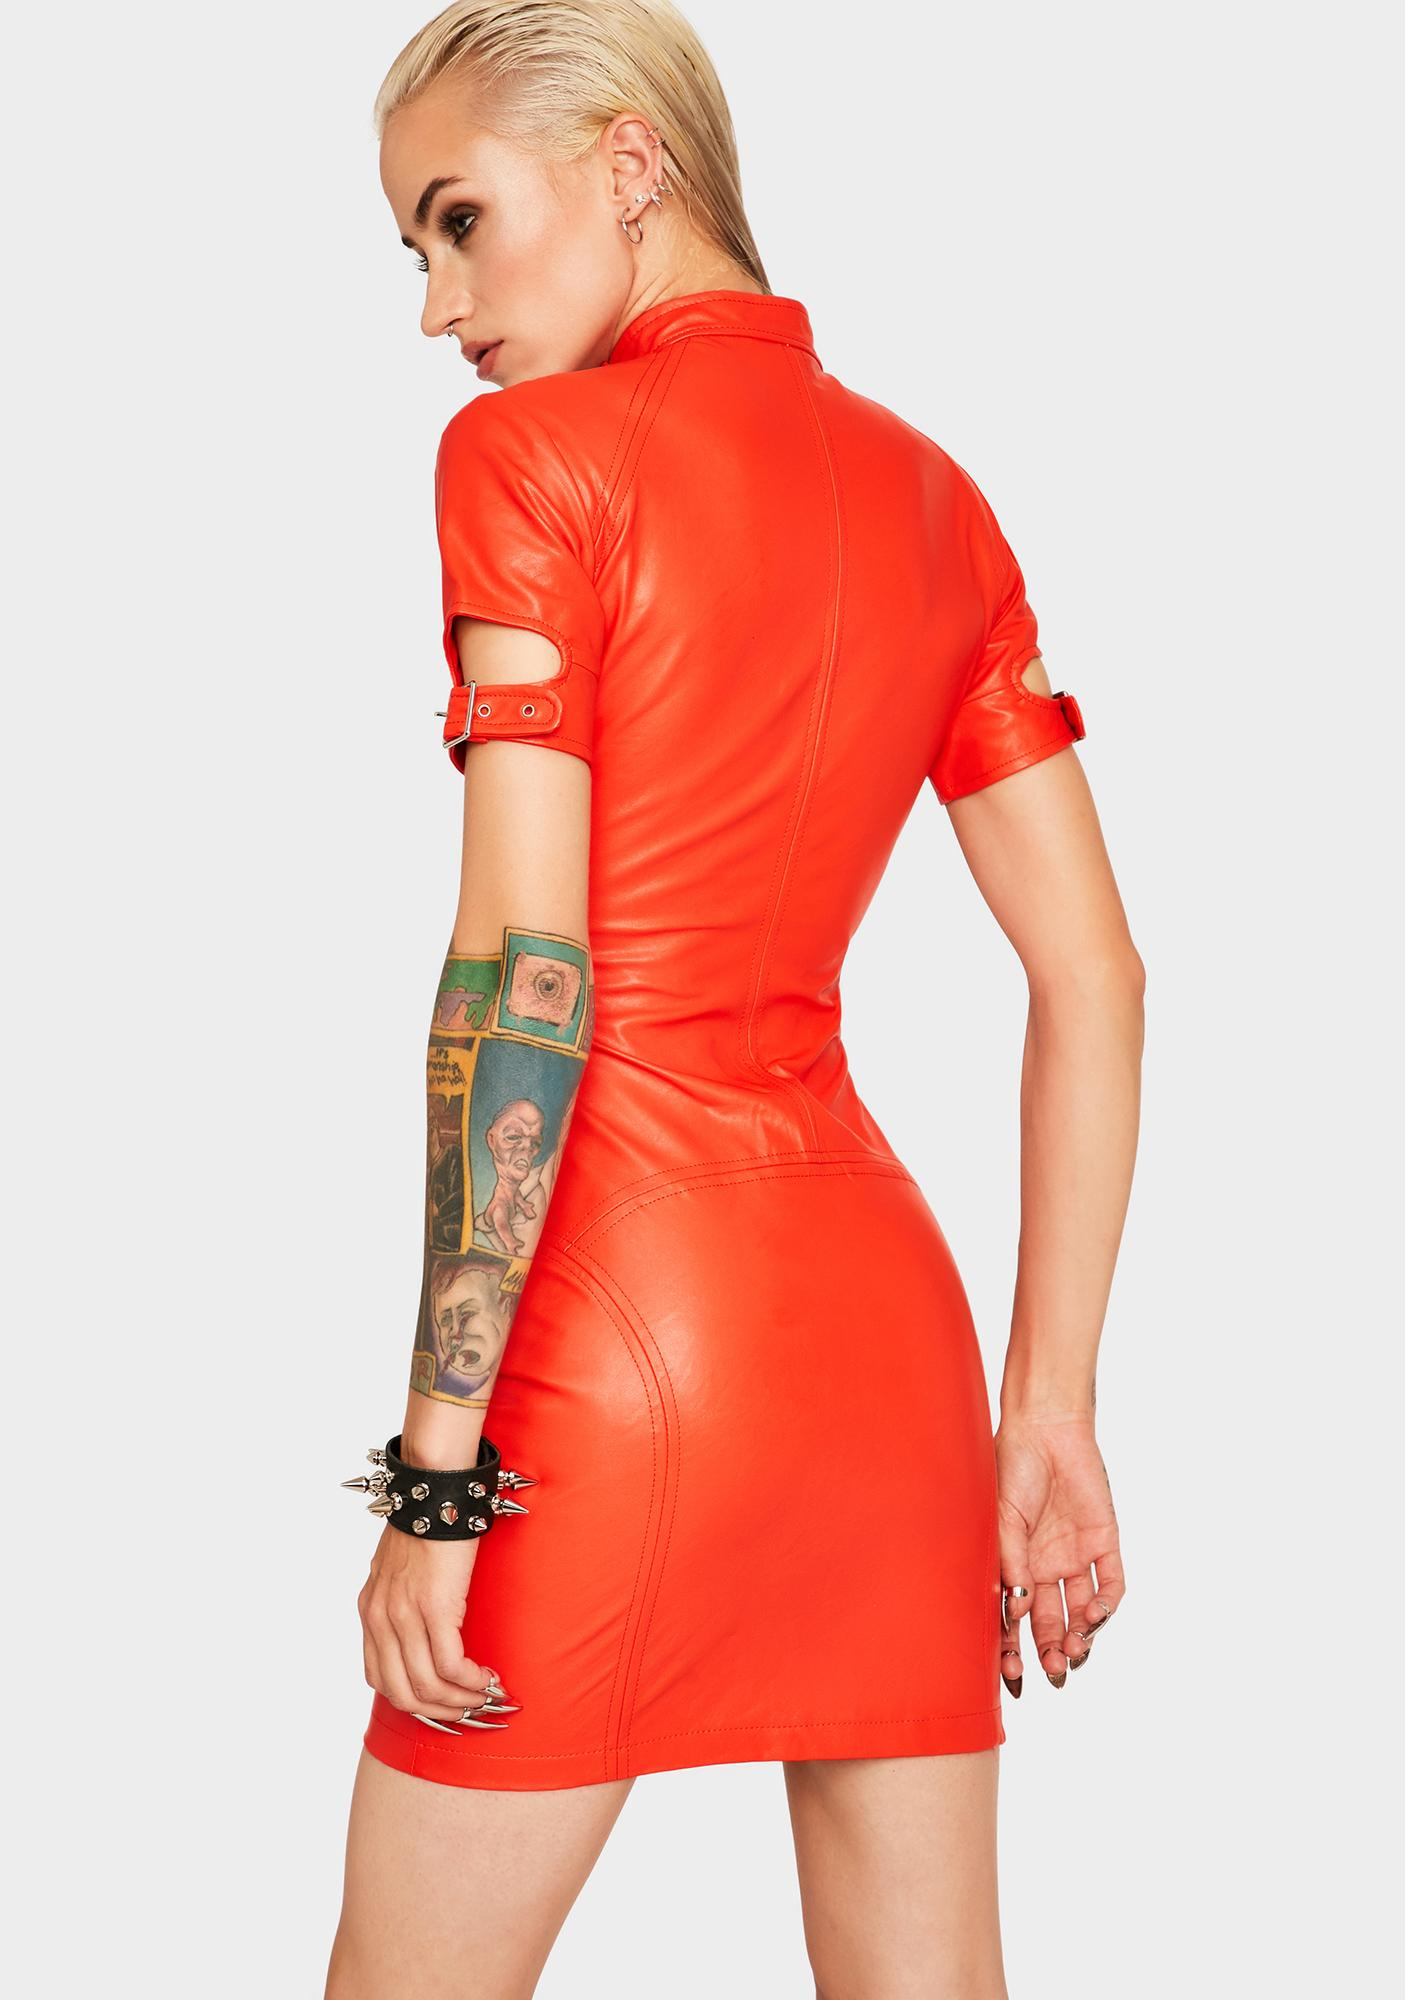 Strange Couture Red Faster Pussycat Vegan Leather Dress